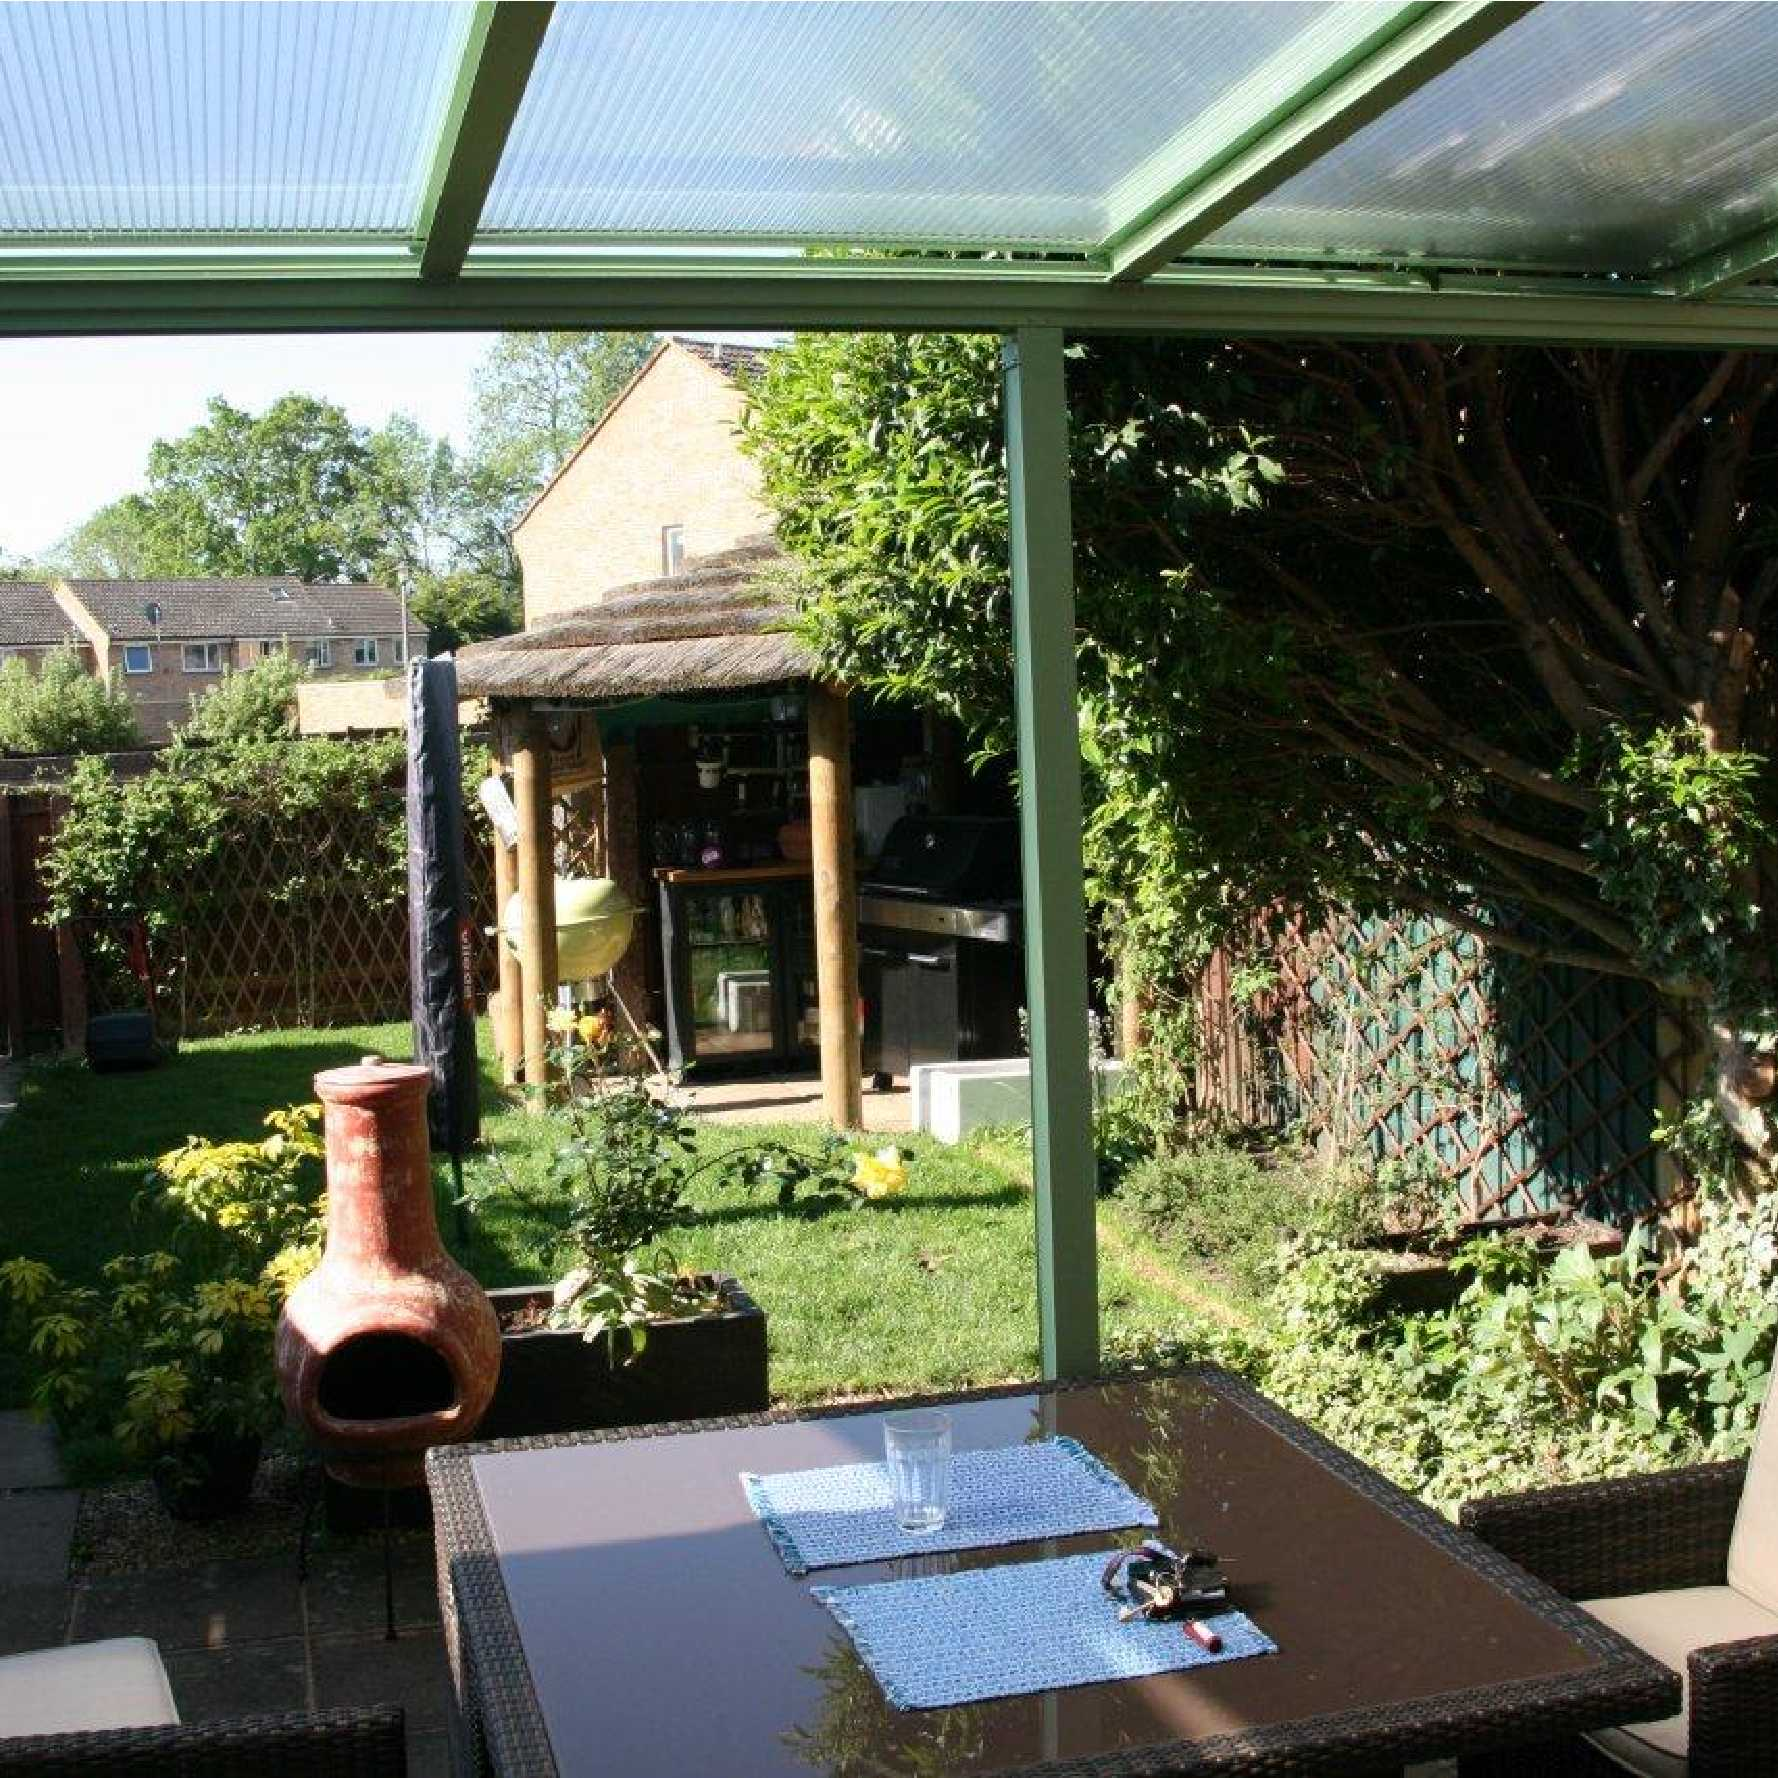 Affordable Omega Smart White Lean-To Canopy with 16mm Polycarbonate Glazing - 6.0m (W) x 4.0m (P), (3) Supporting Posts